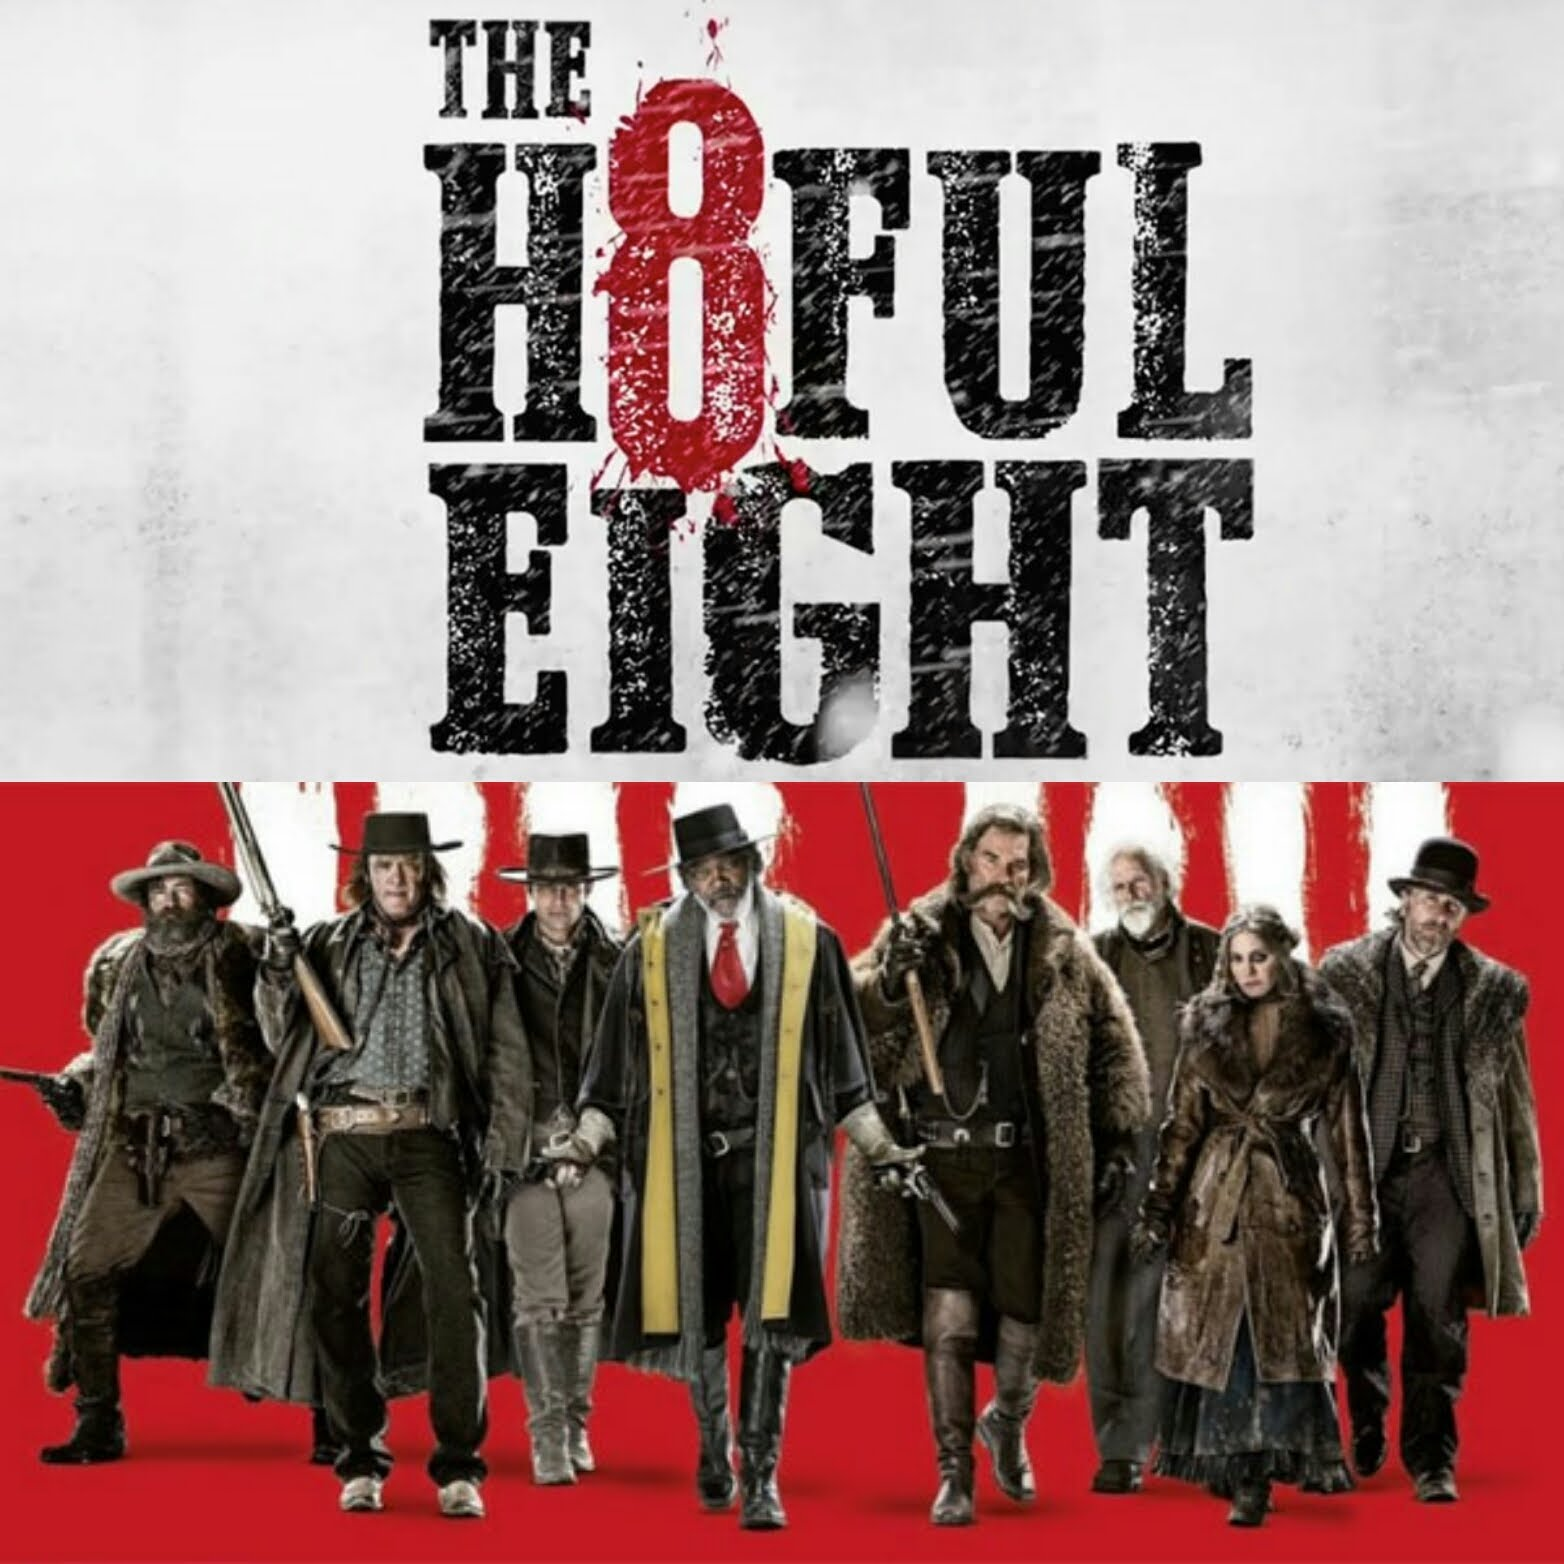 Fakta Menarik Tentang Film The Hateful Eight